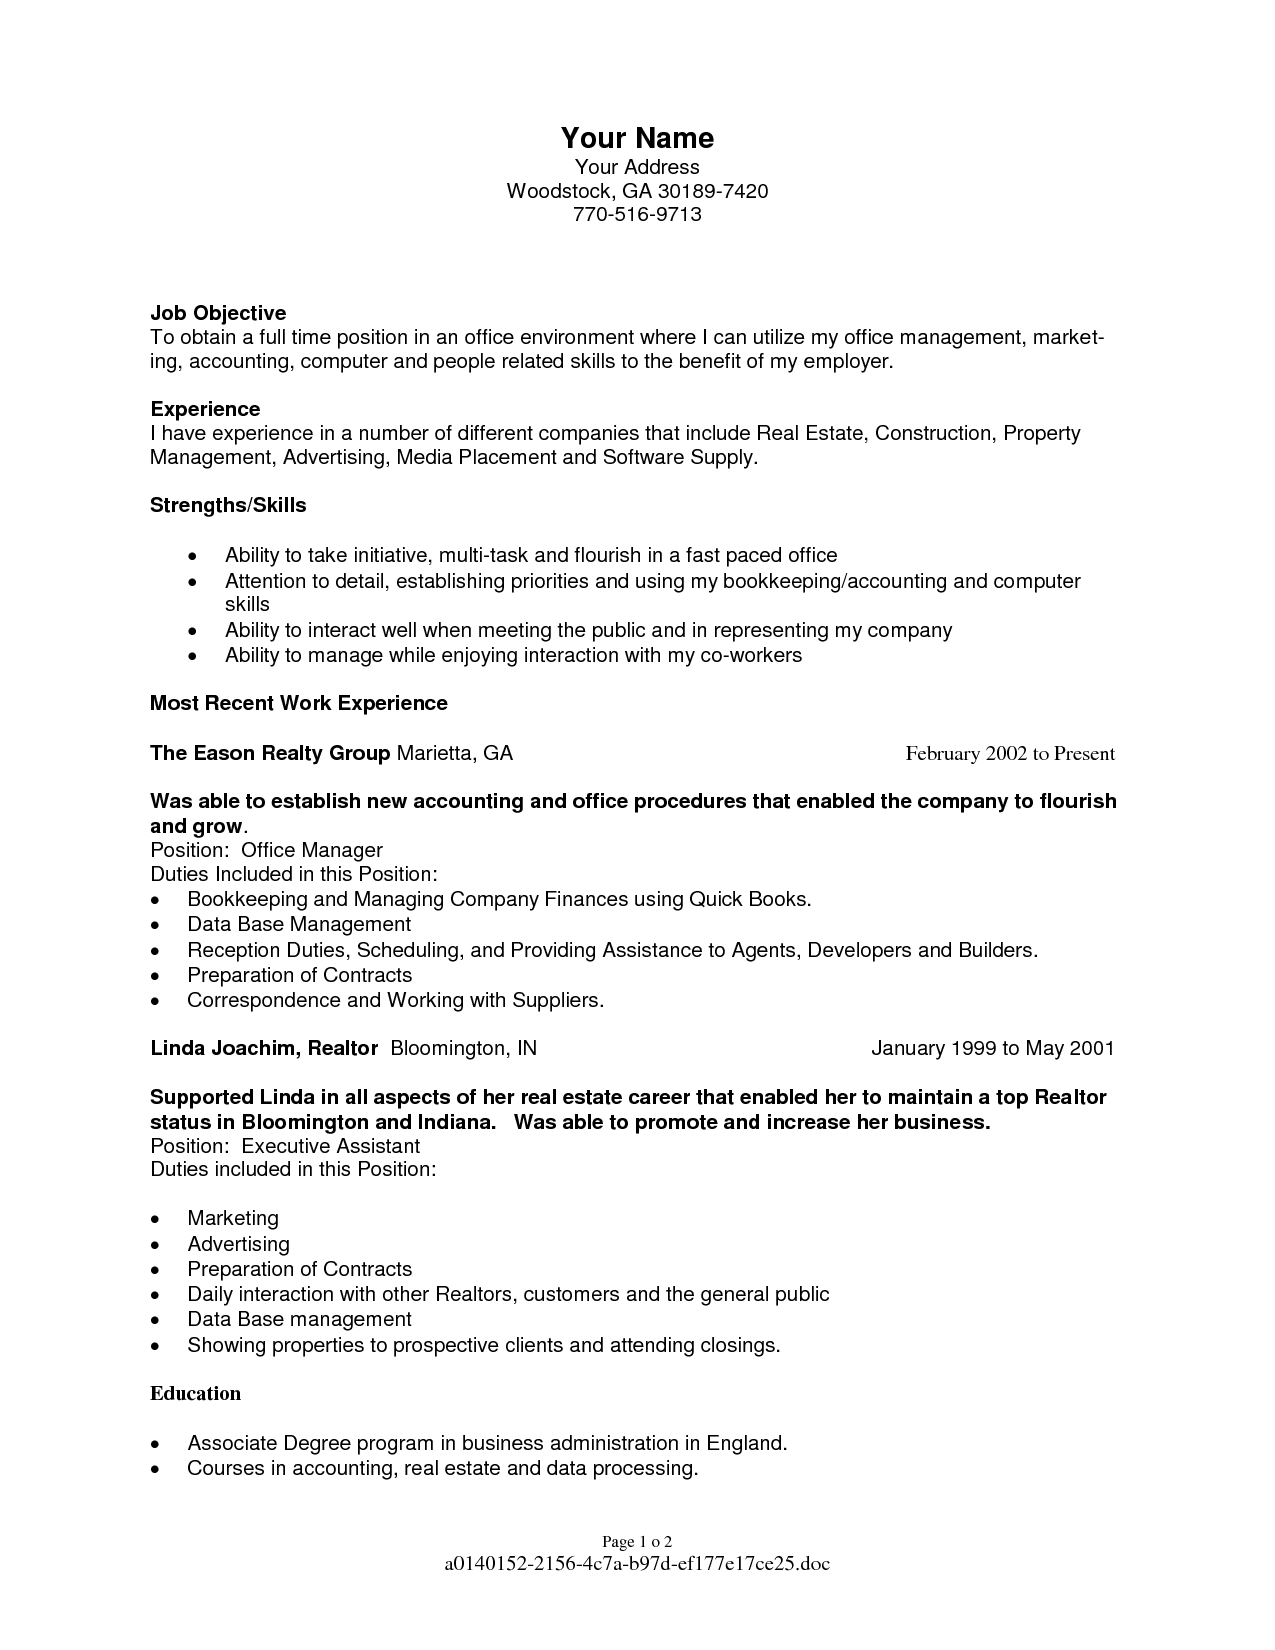 Full Time Real Estate Agent Resume Sample With Objective And Experiences 8